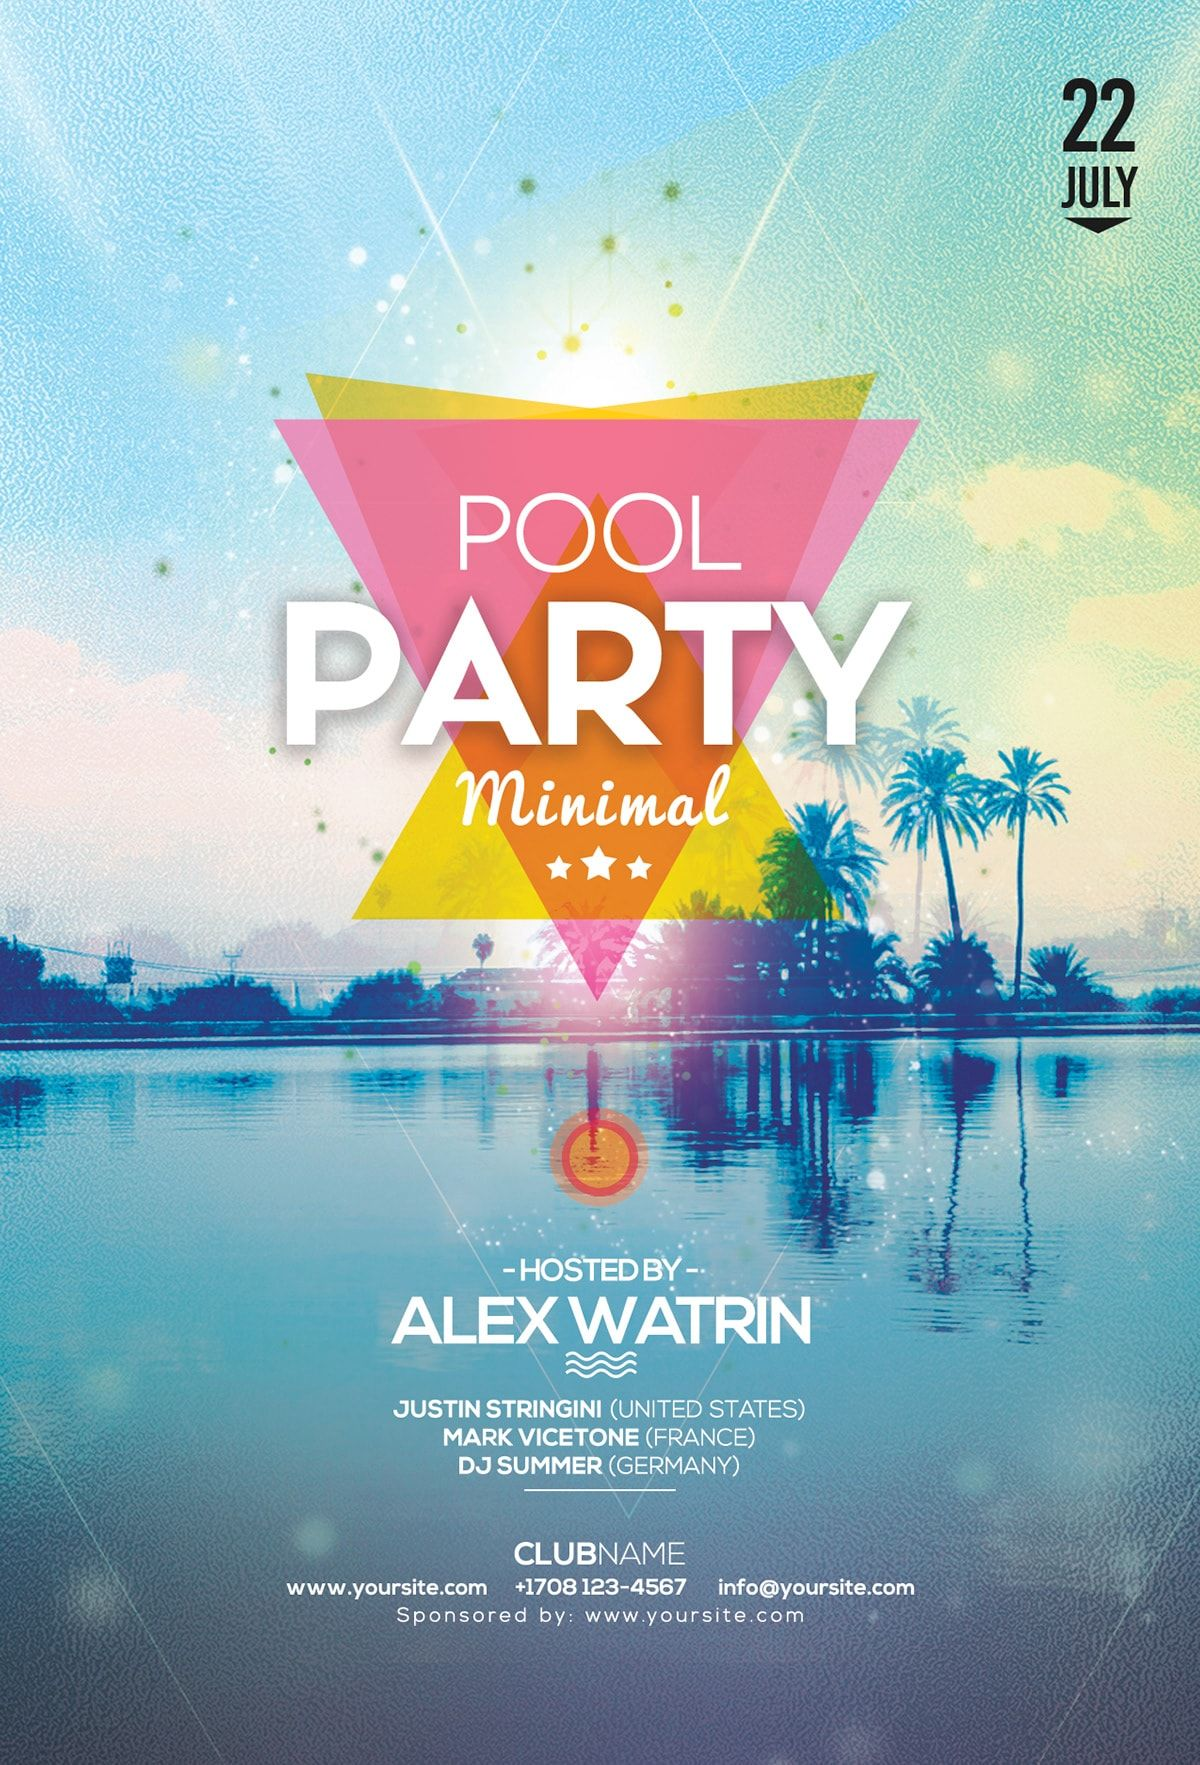 Pool Party Free Psd Flyer Template Pool Parties Flyer Free